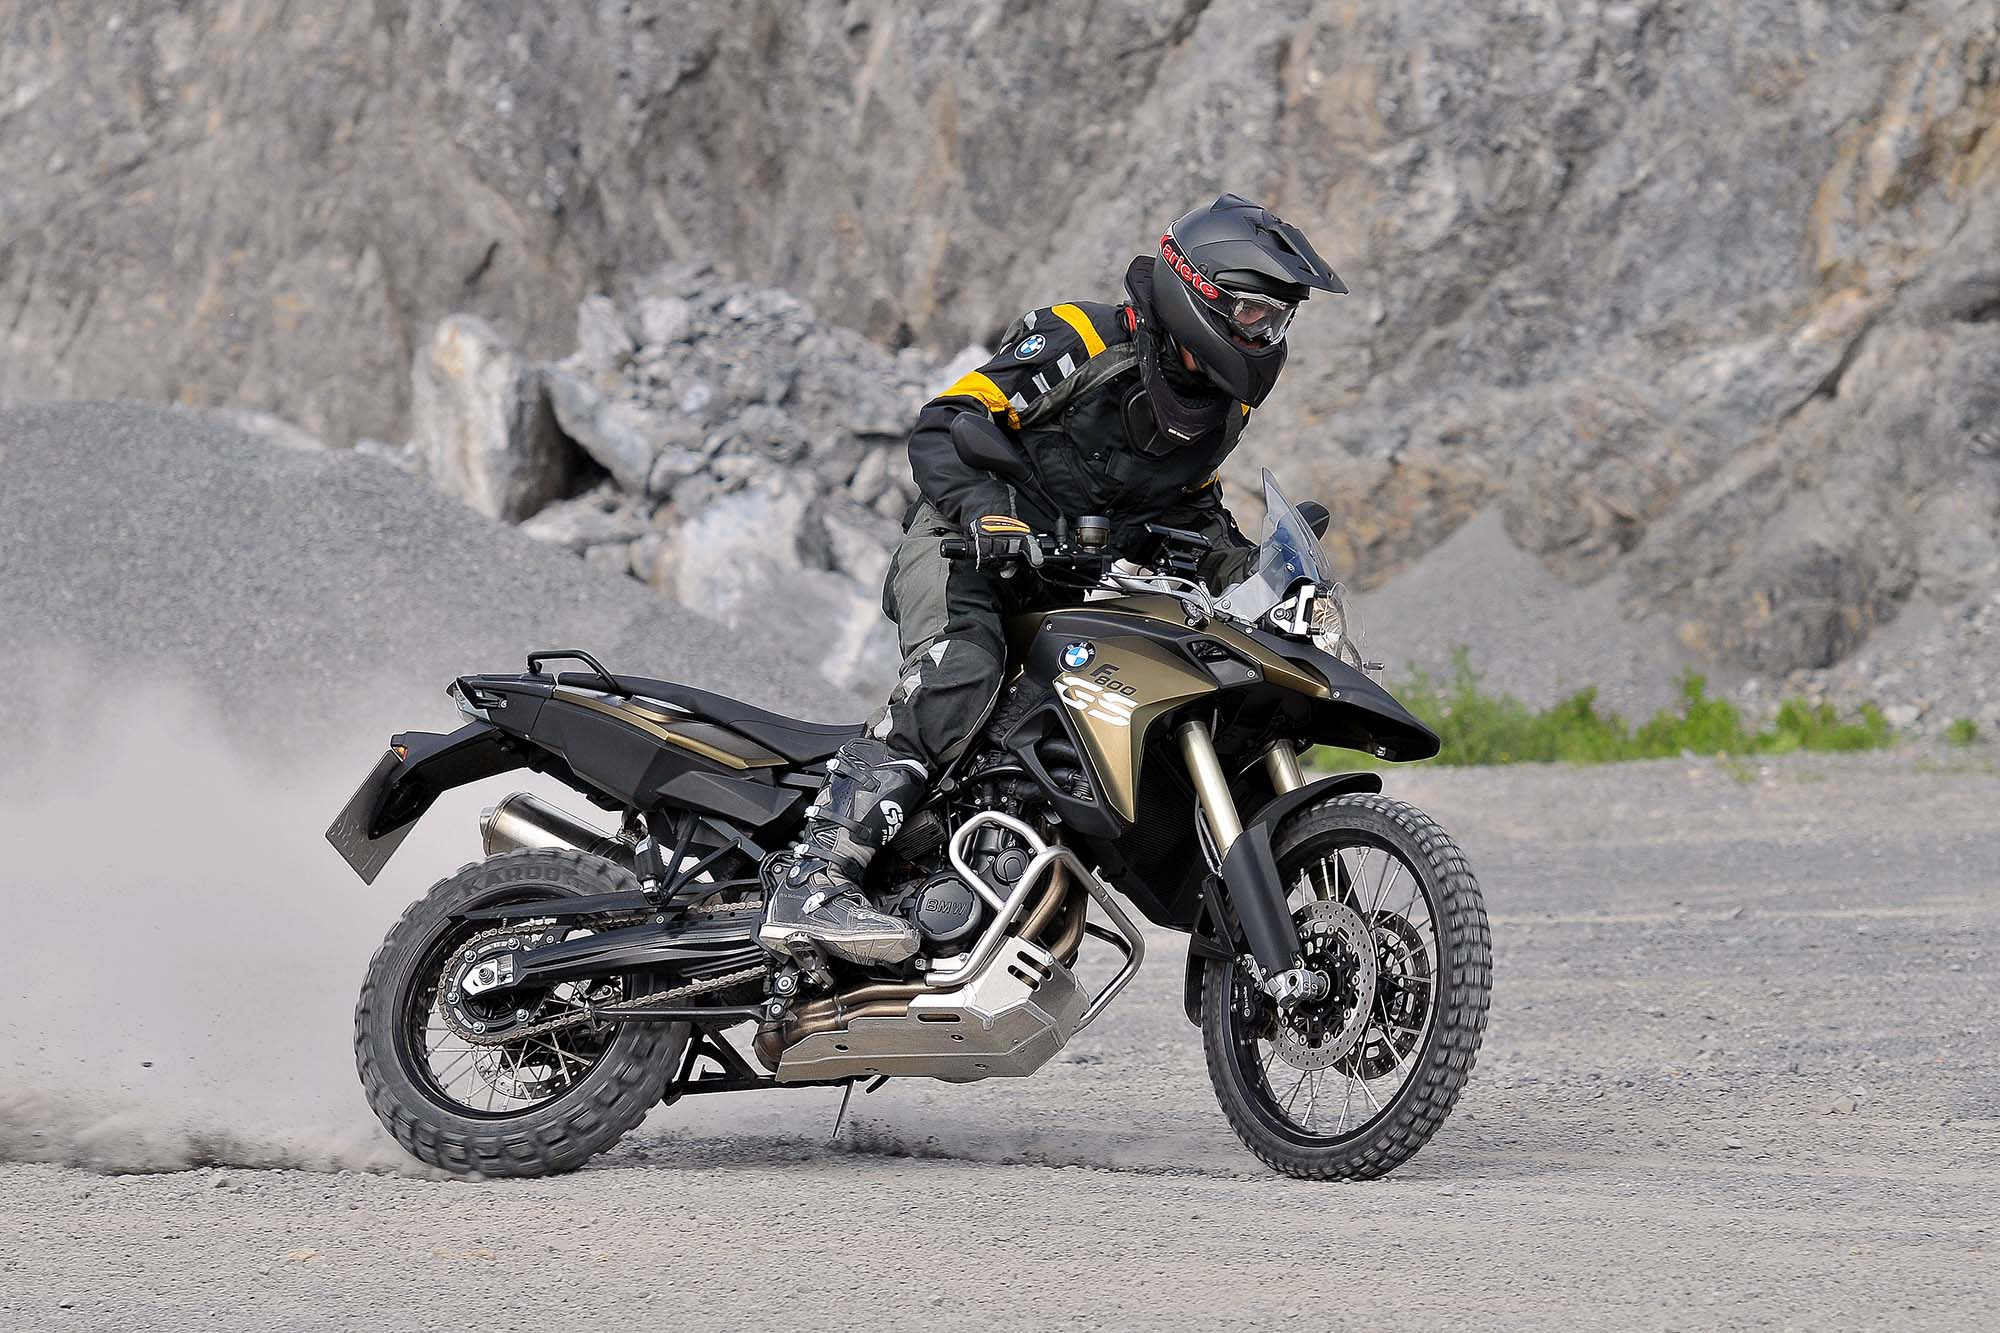 2013 BMW F800GS Gets Modest Updates - Asphalt & Rubber